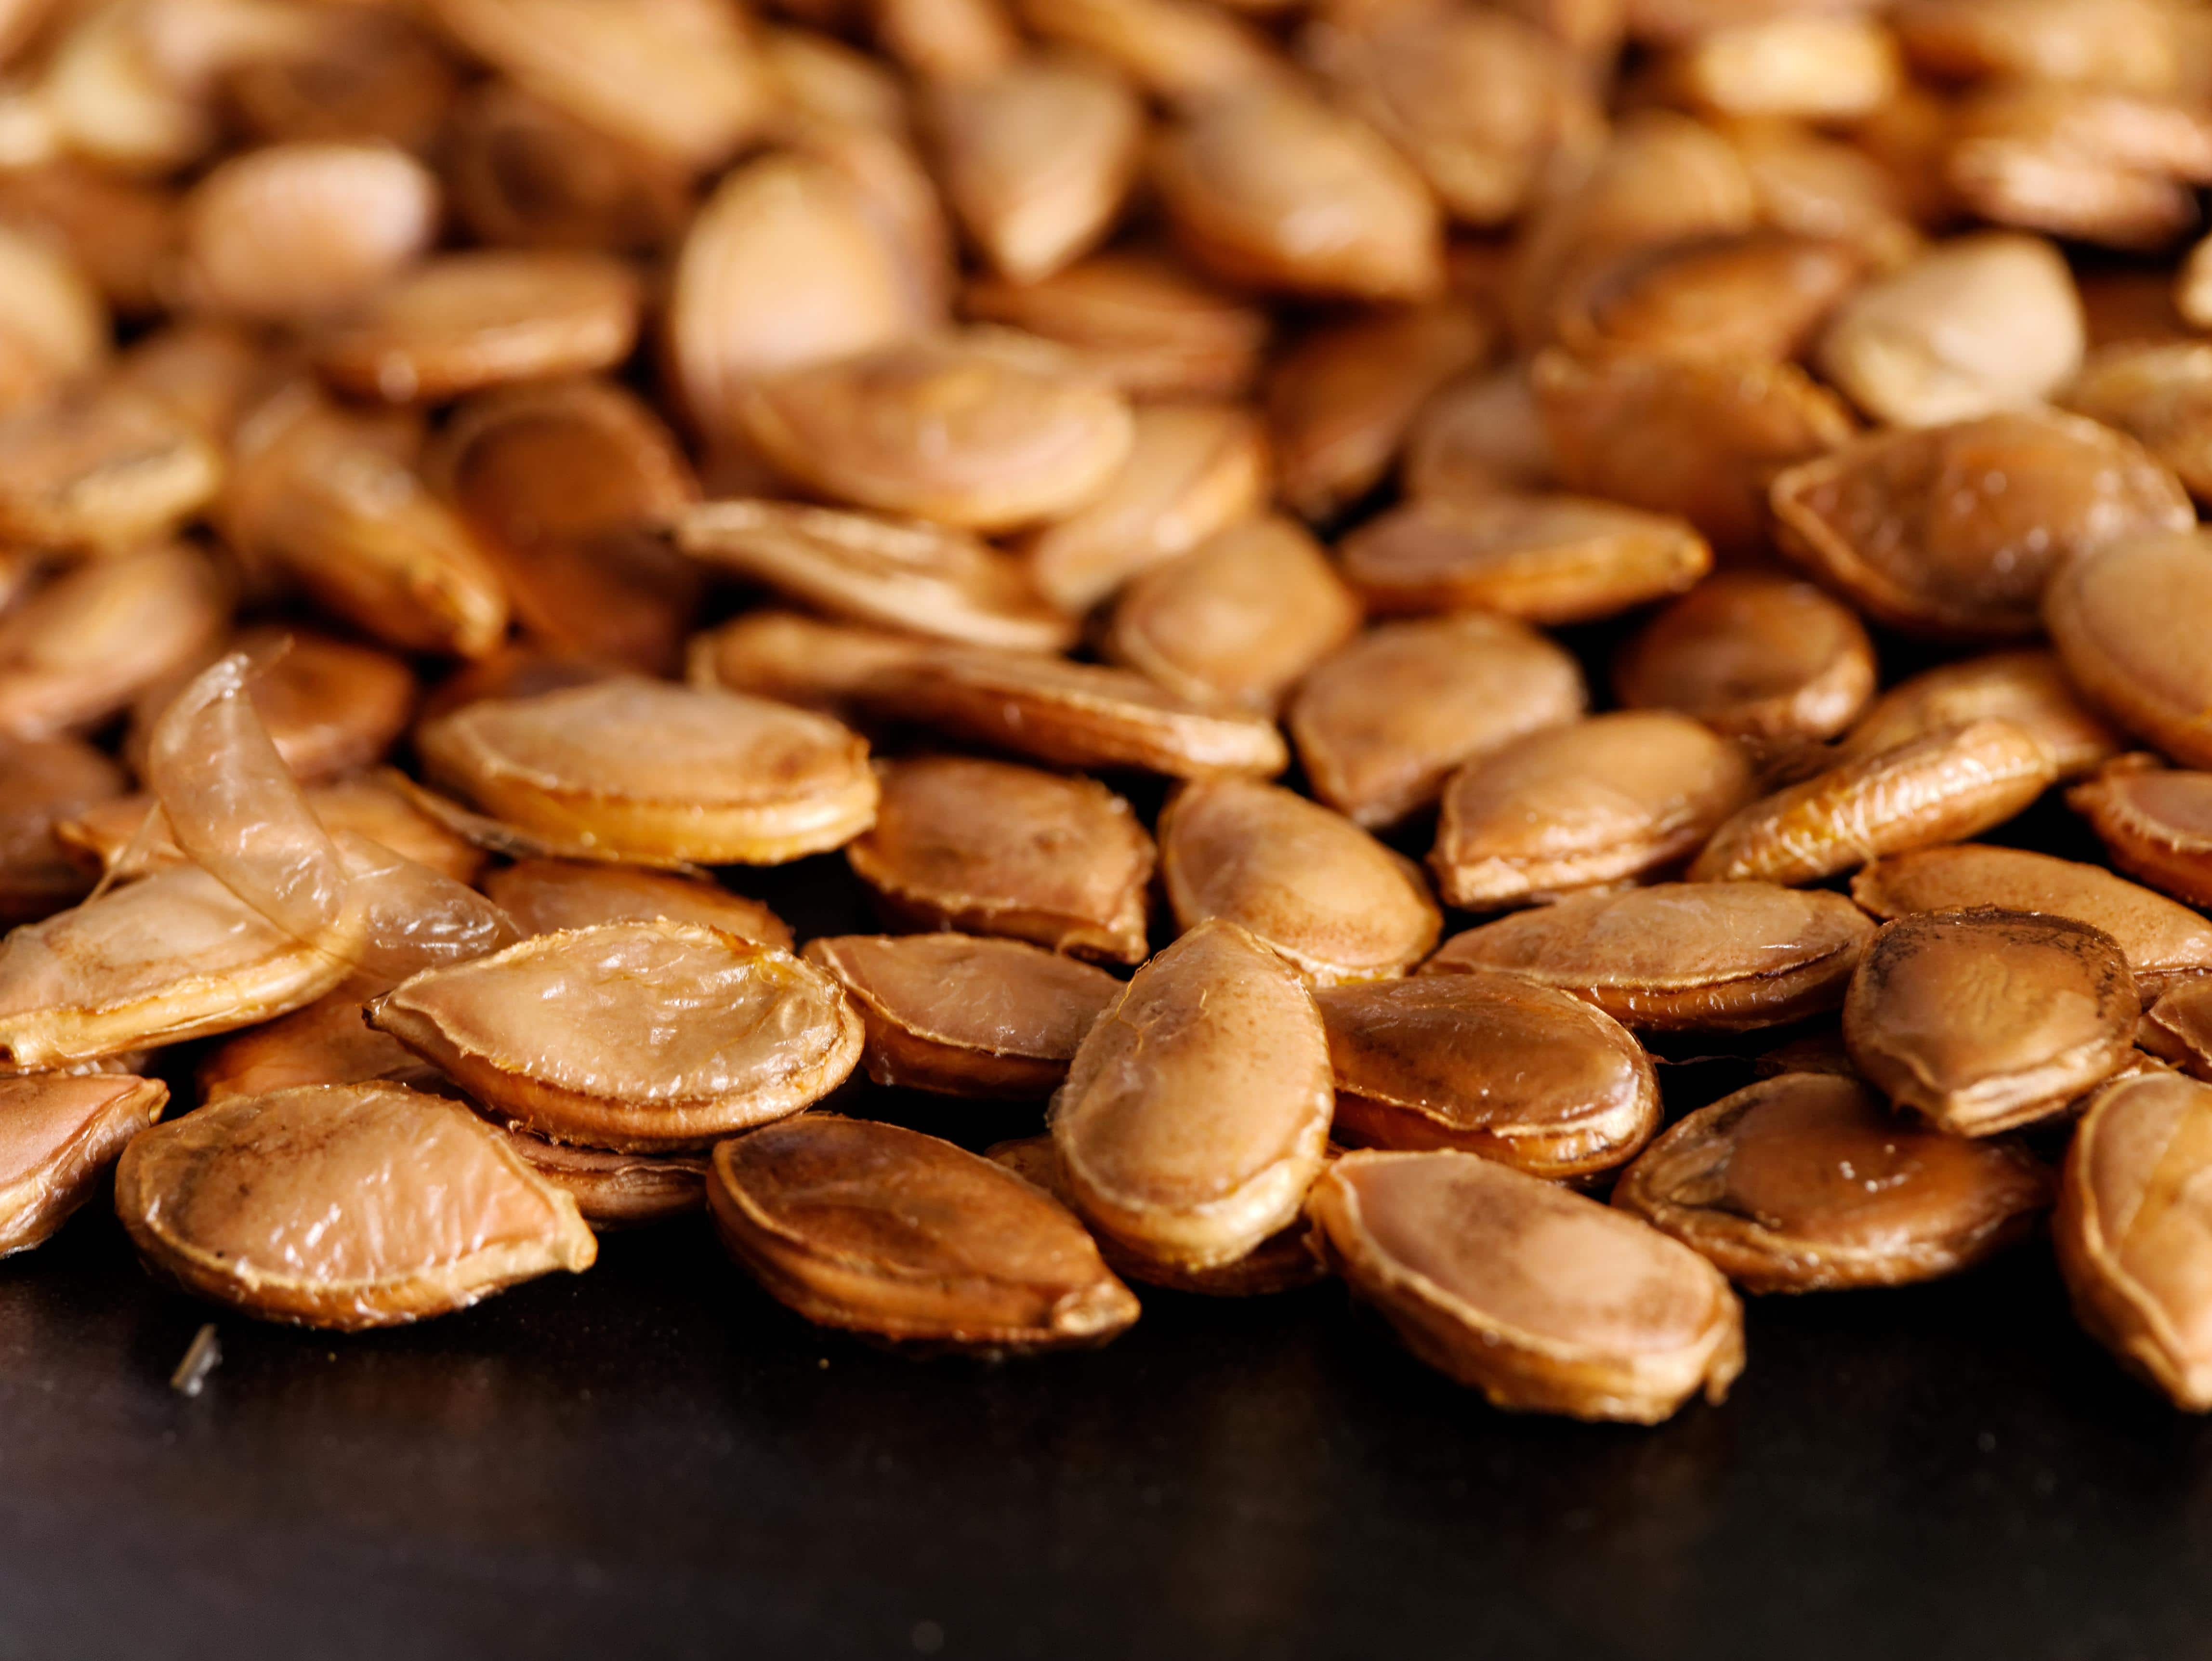 What is in pumpkin seeds